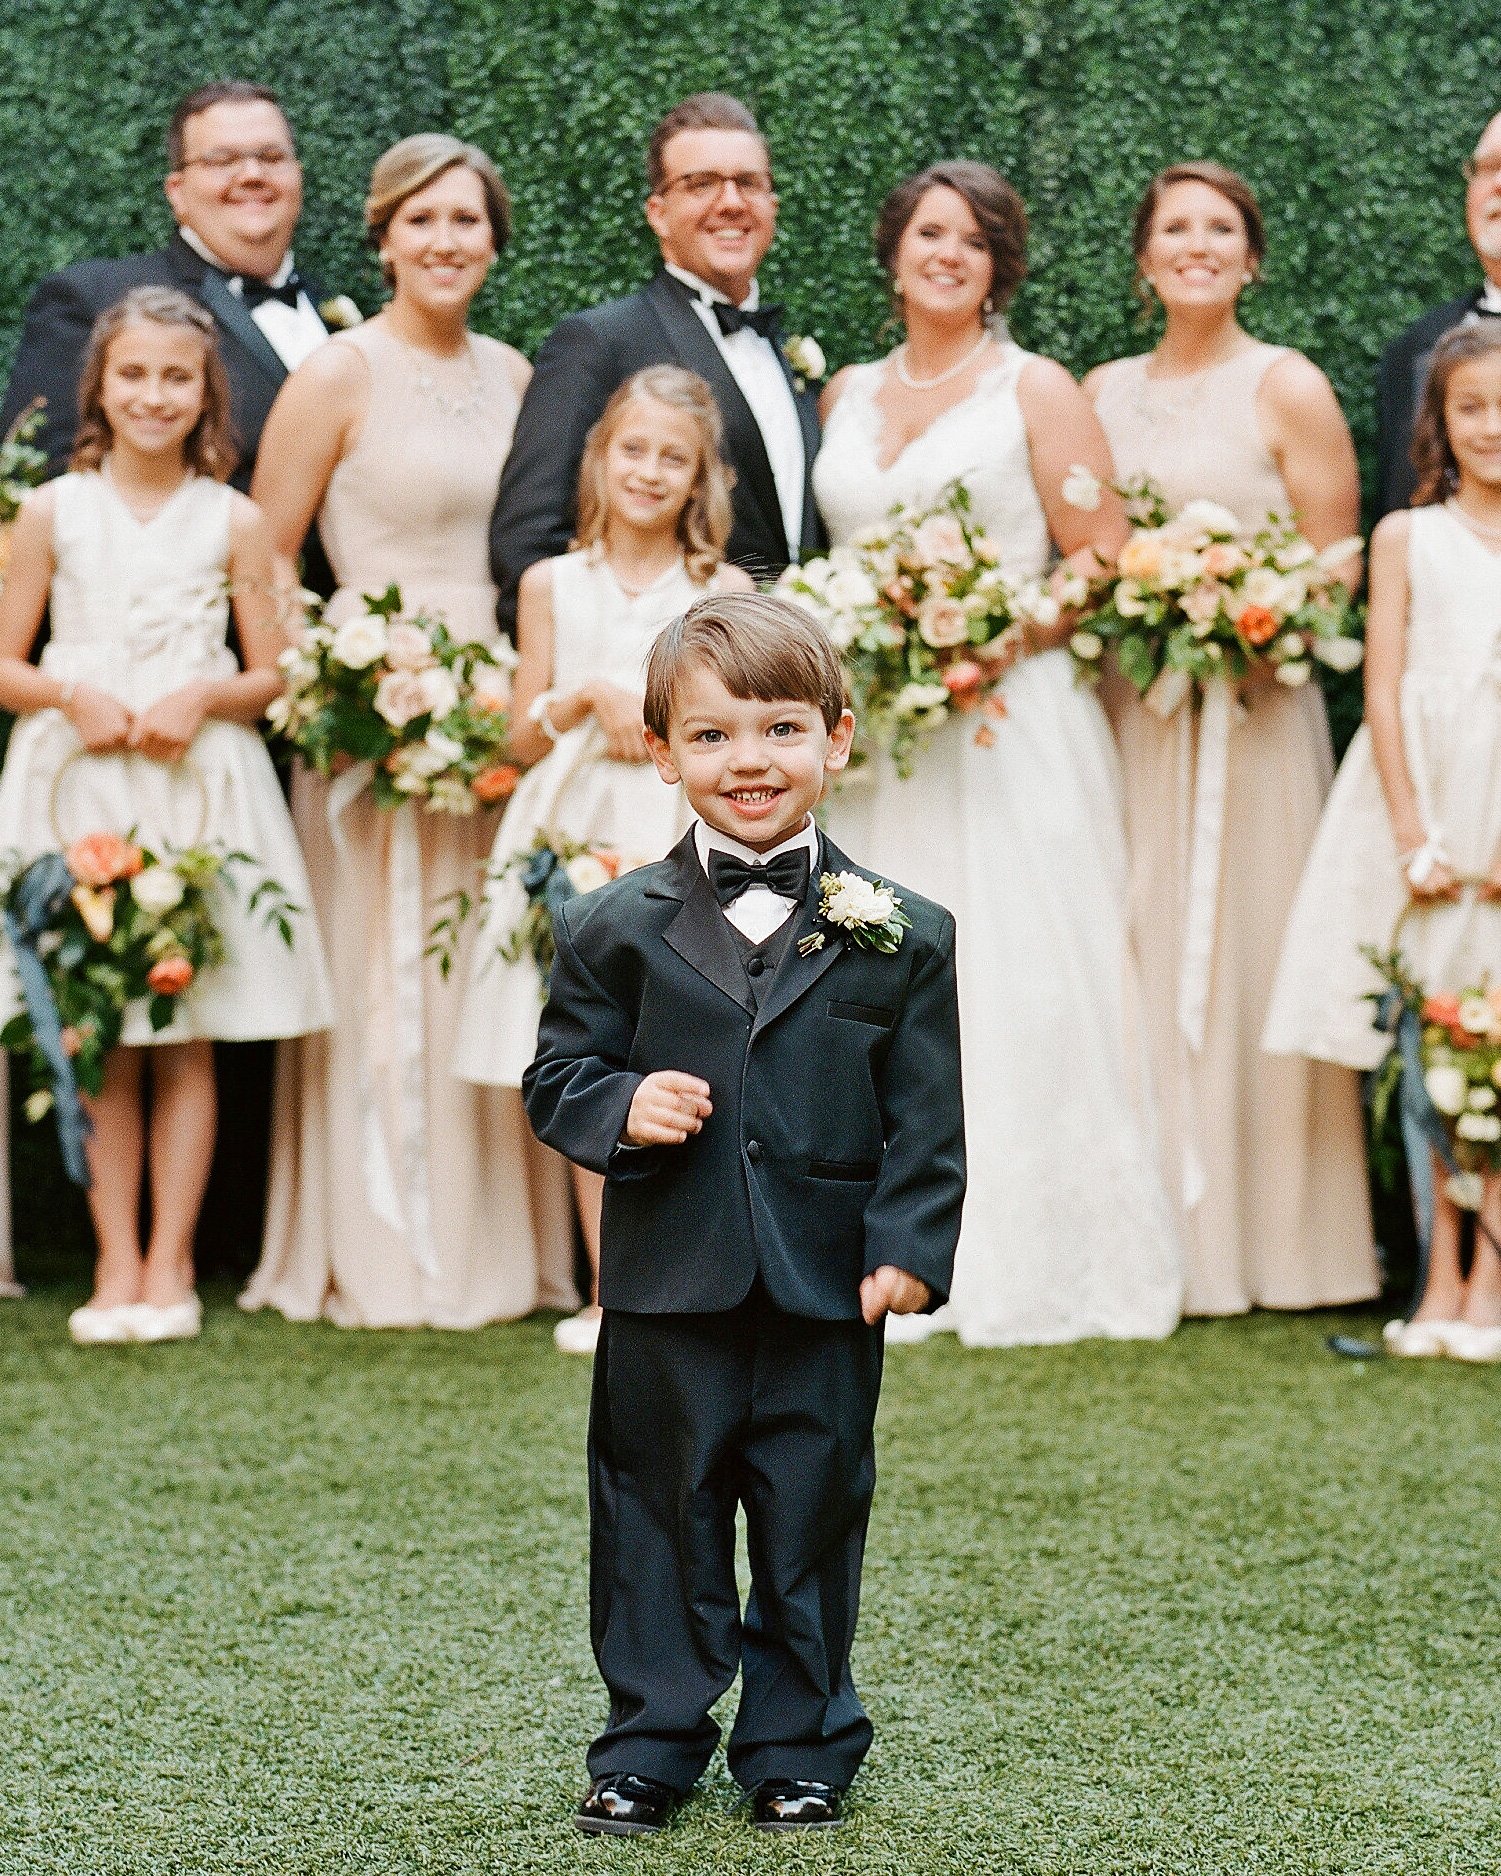 carey jared wedding ringbearer